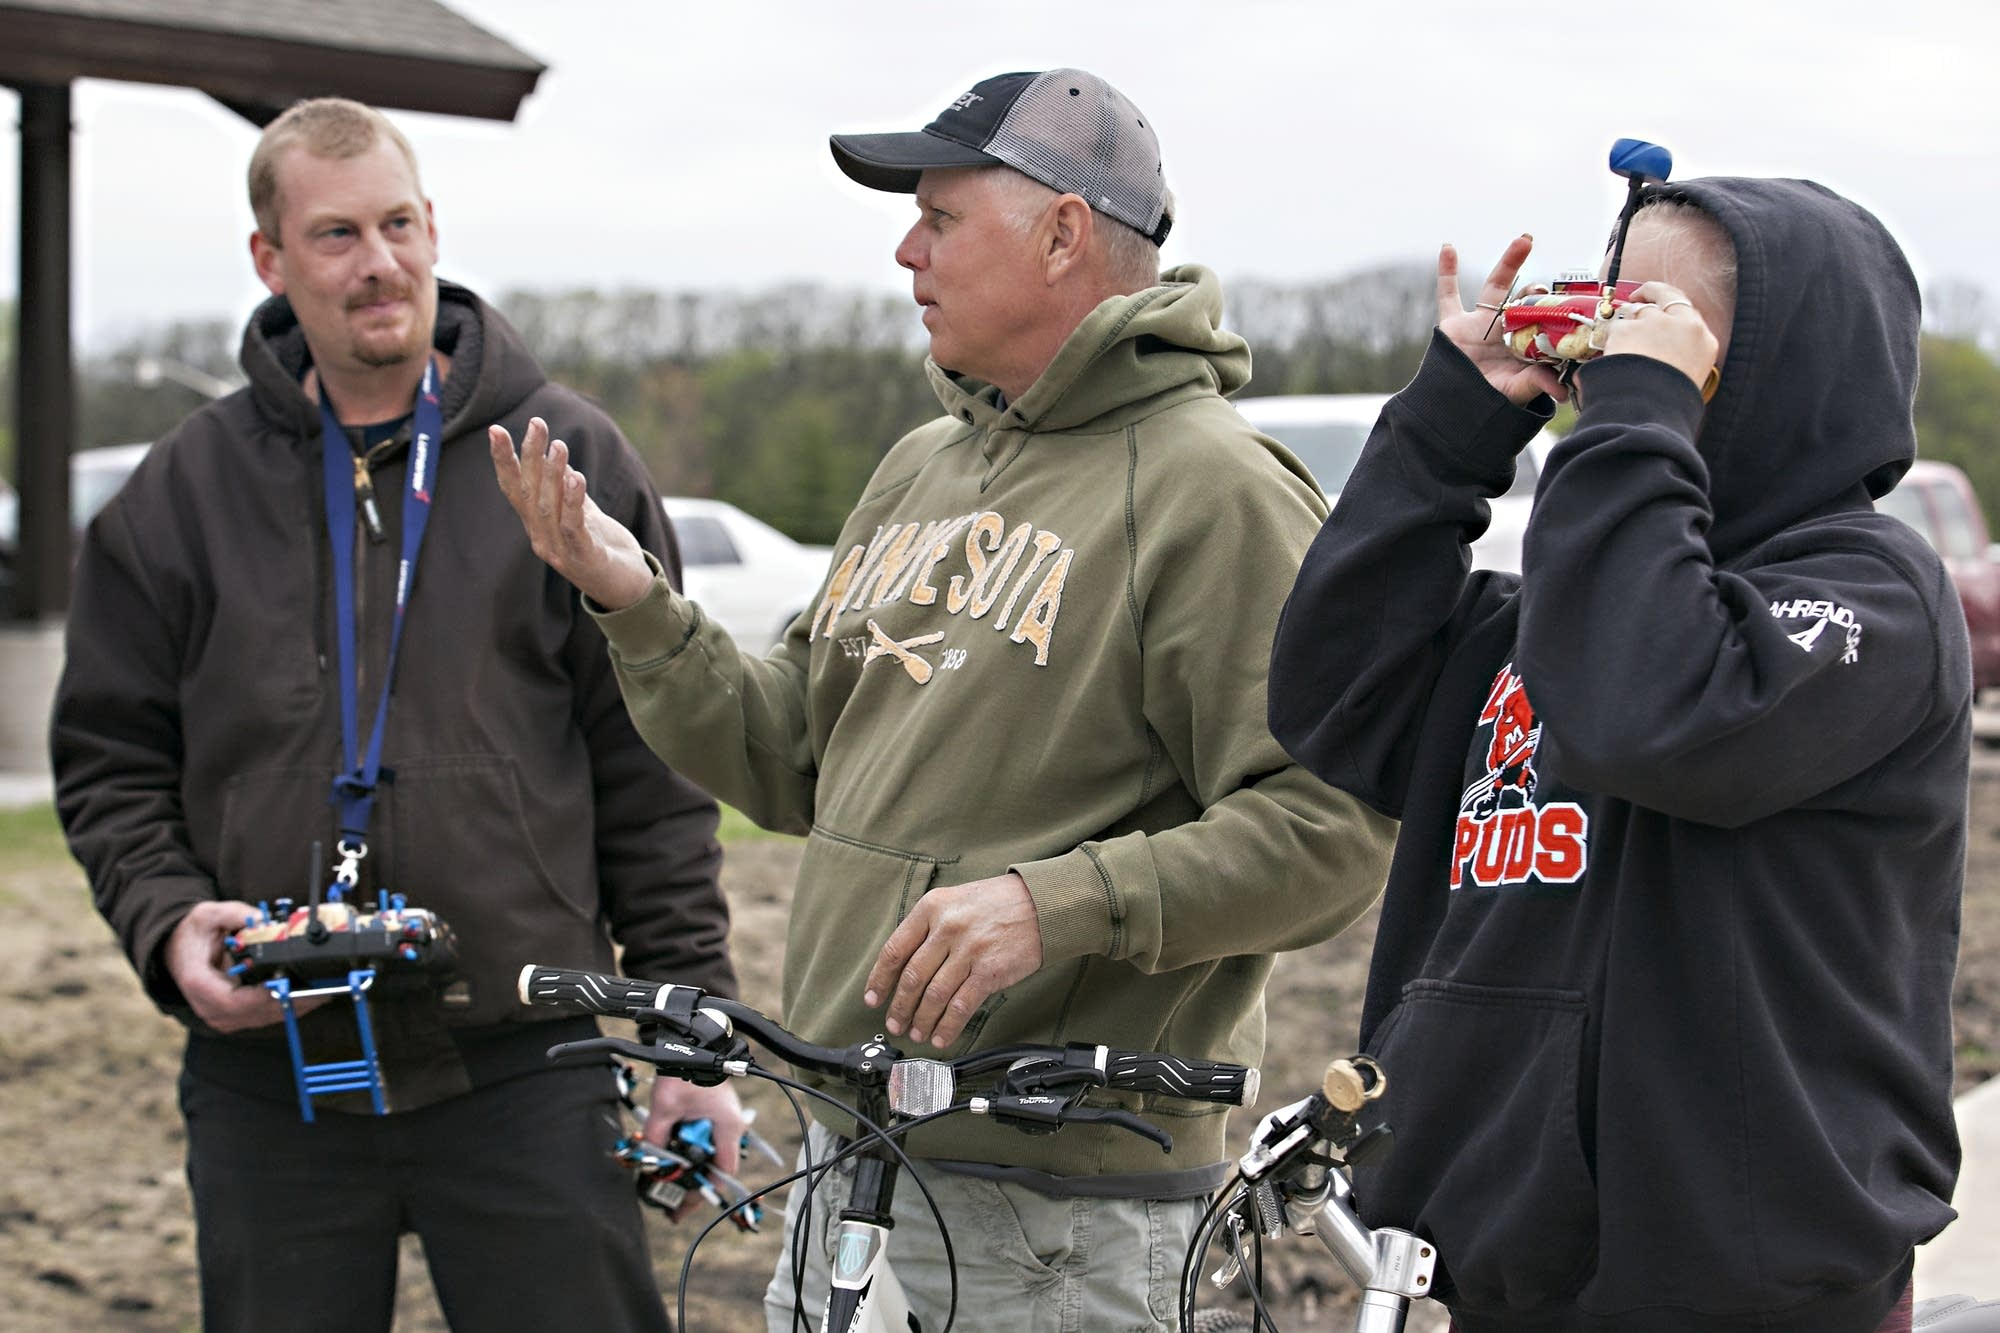 Drone racing often attracts onlookers and a few questions.